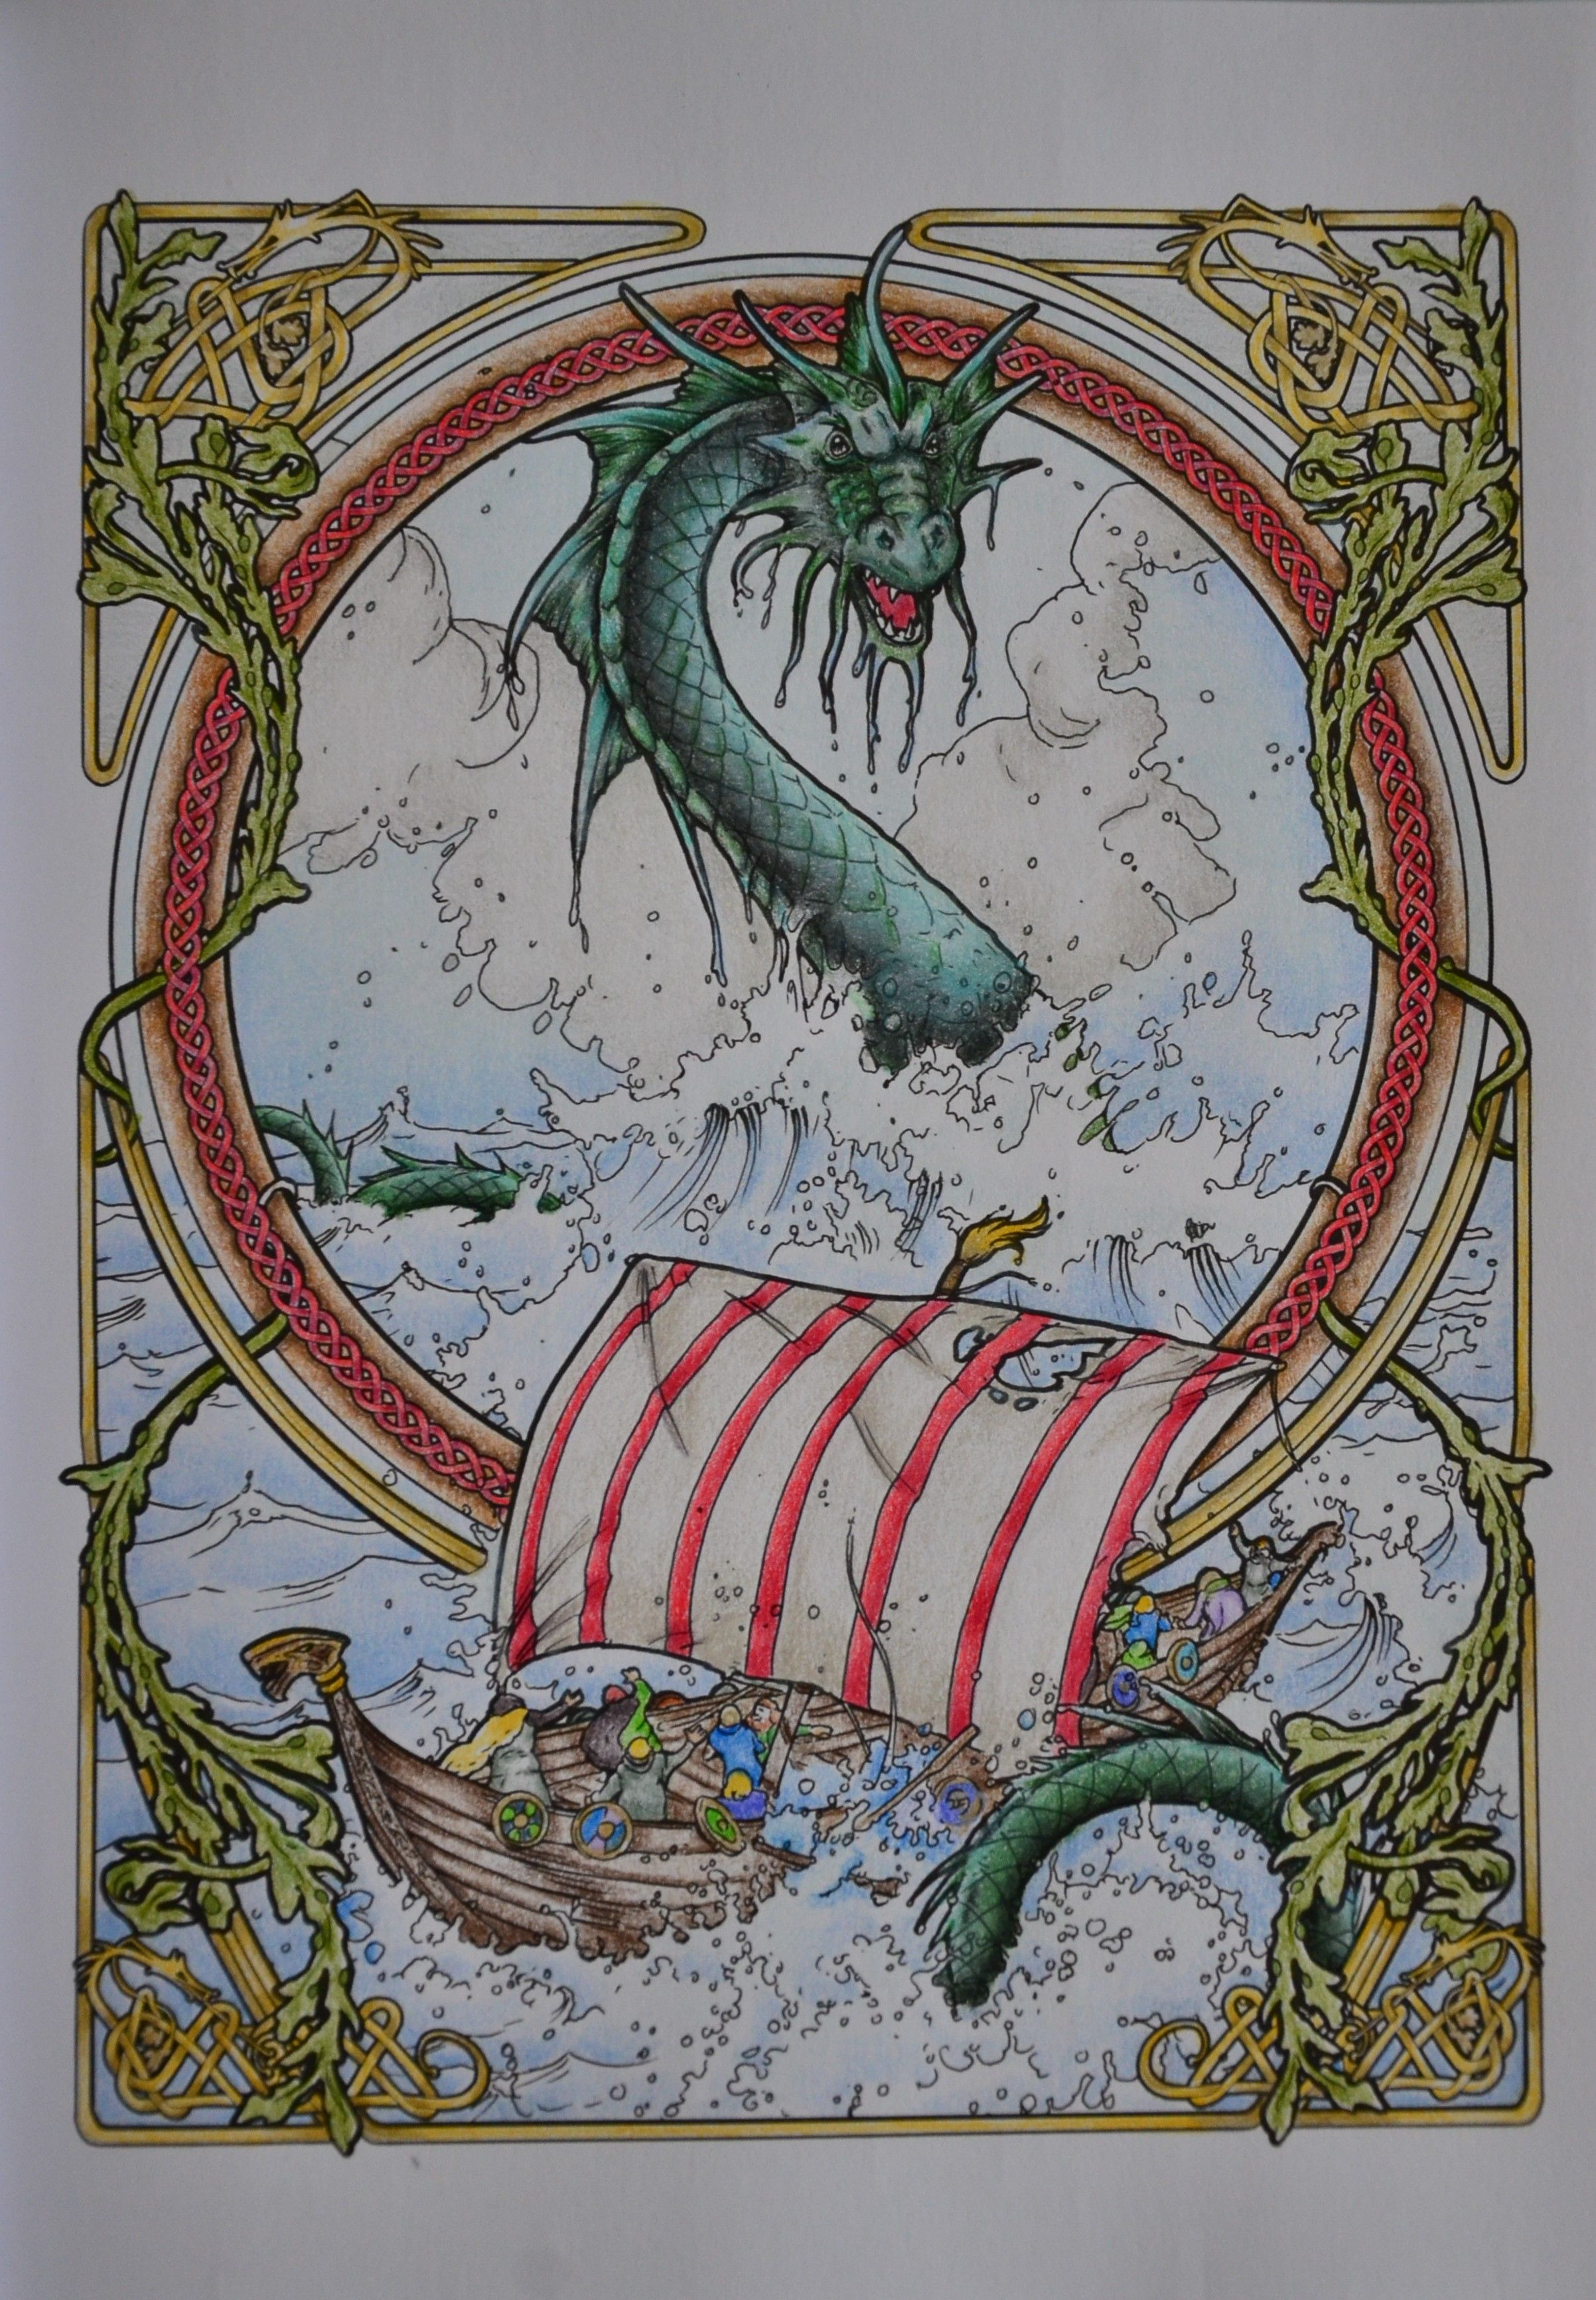 49 From Herb Leonhard In Colouring Heaven Dragon Viking Ship Colored With Prisma Colors 14 03 2019 Colouring Heaven Dragon Drawing Coloring Books